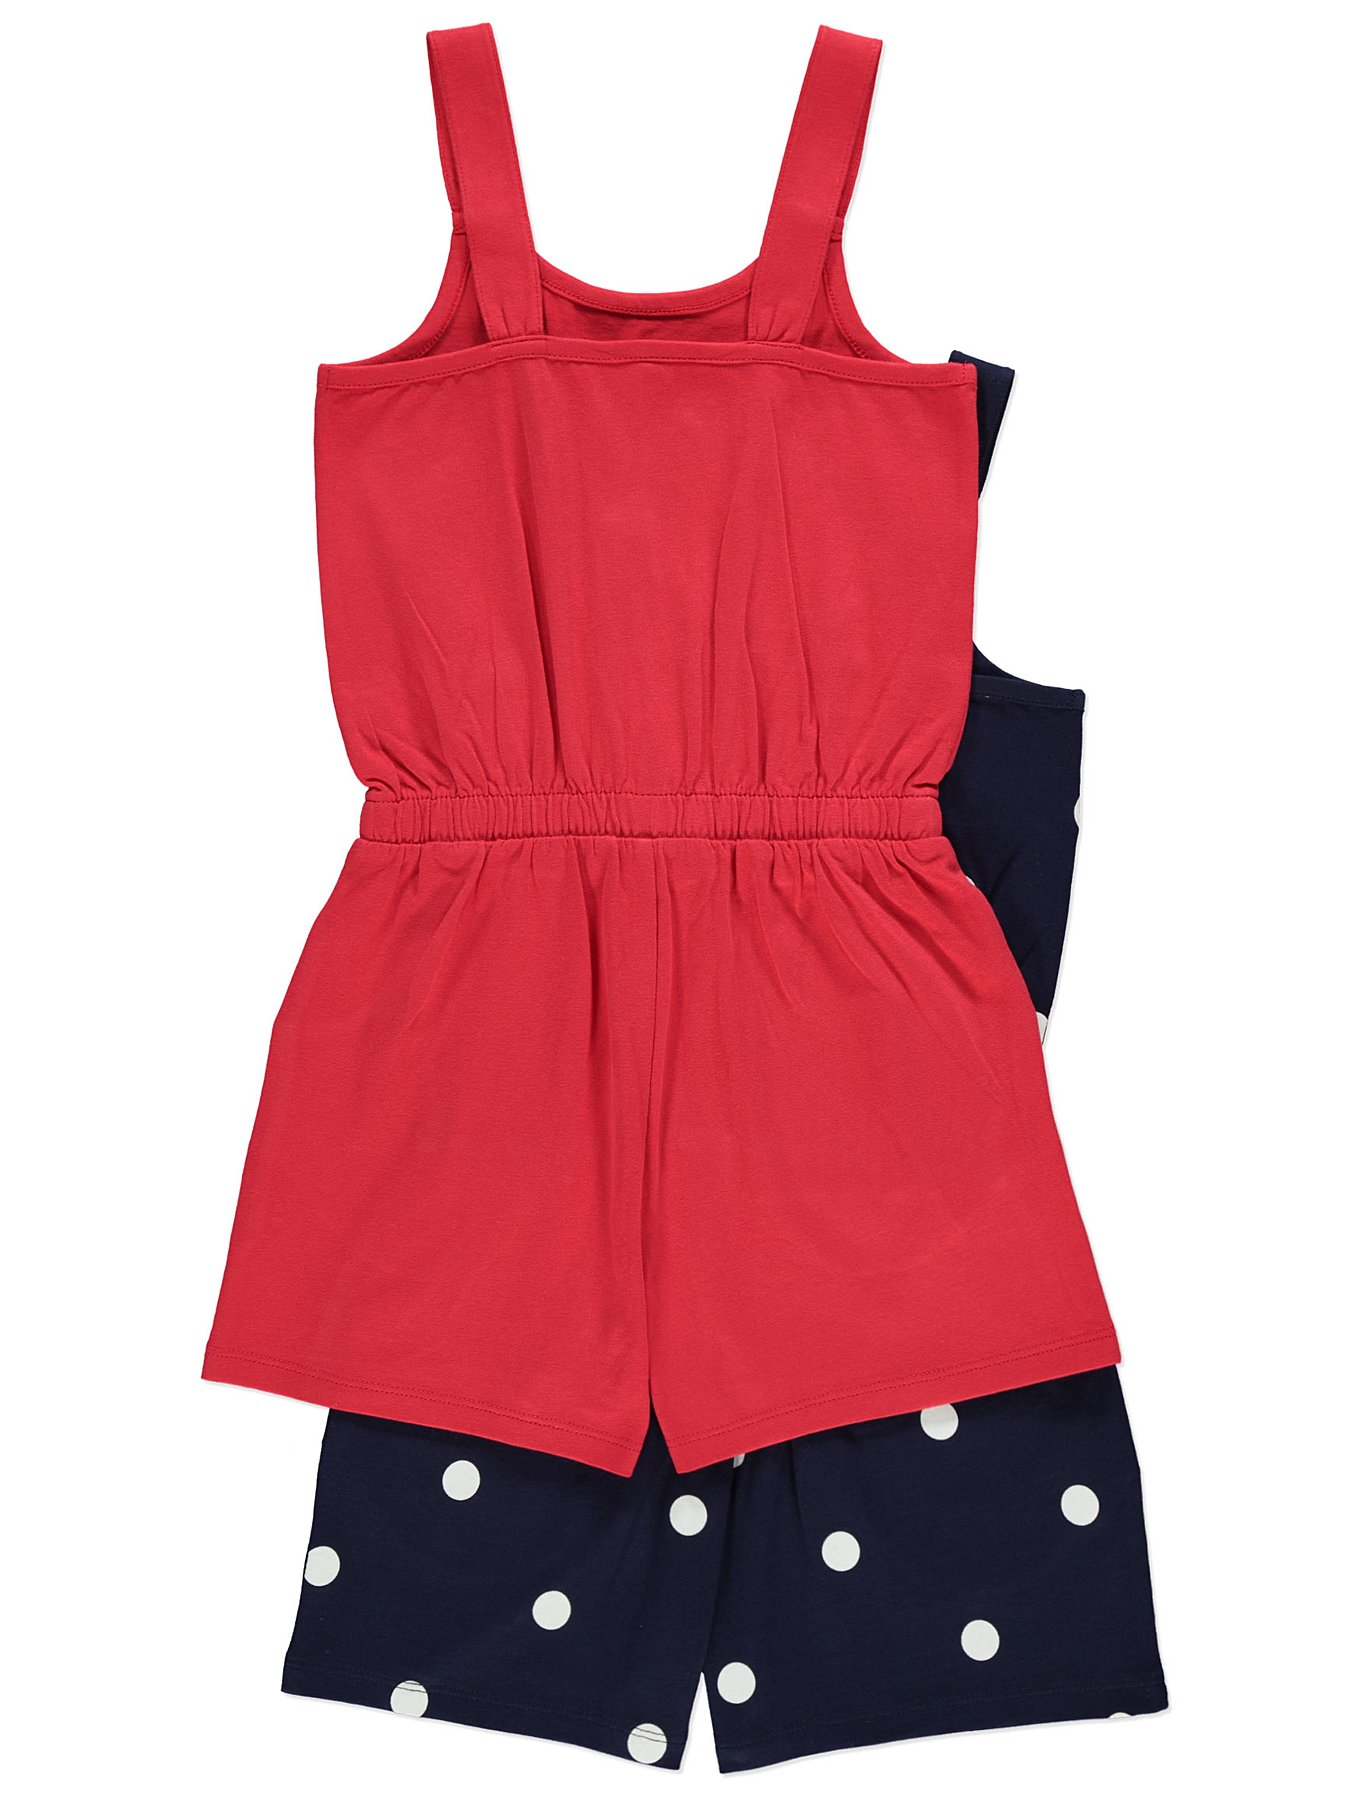 fdc822c4b3c3 Red Polka Dot Playsuit 2 Pack. Reset